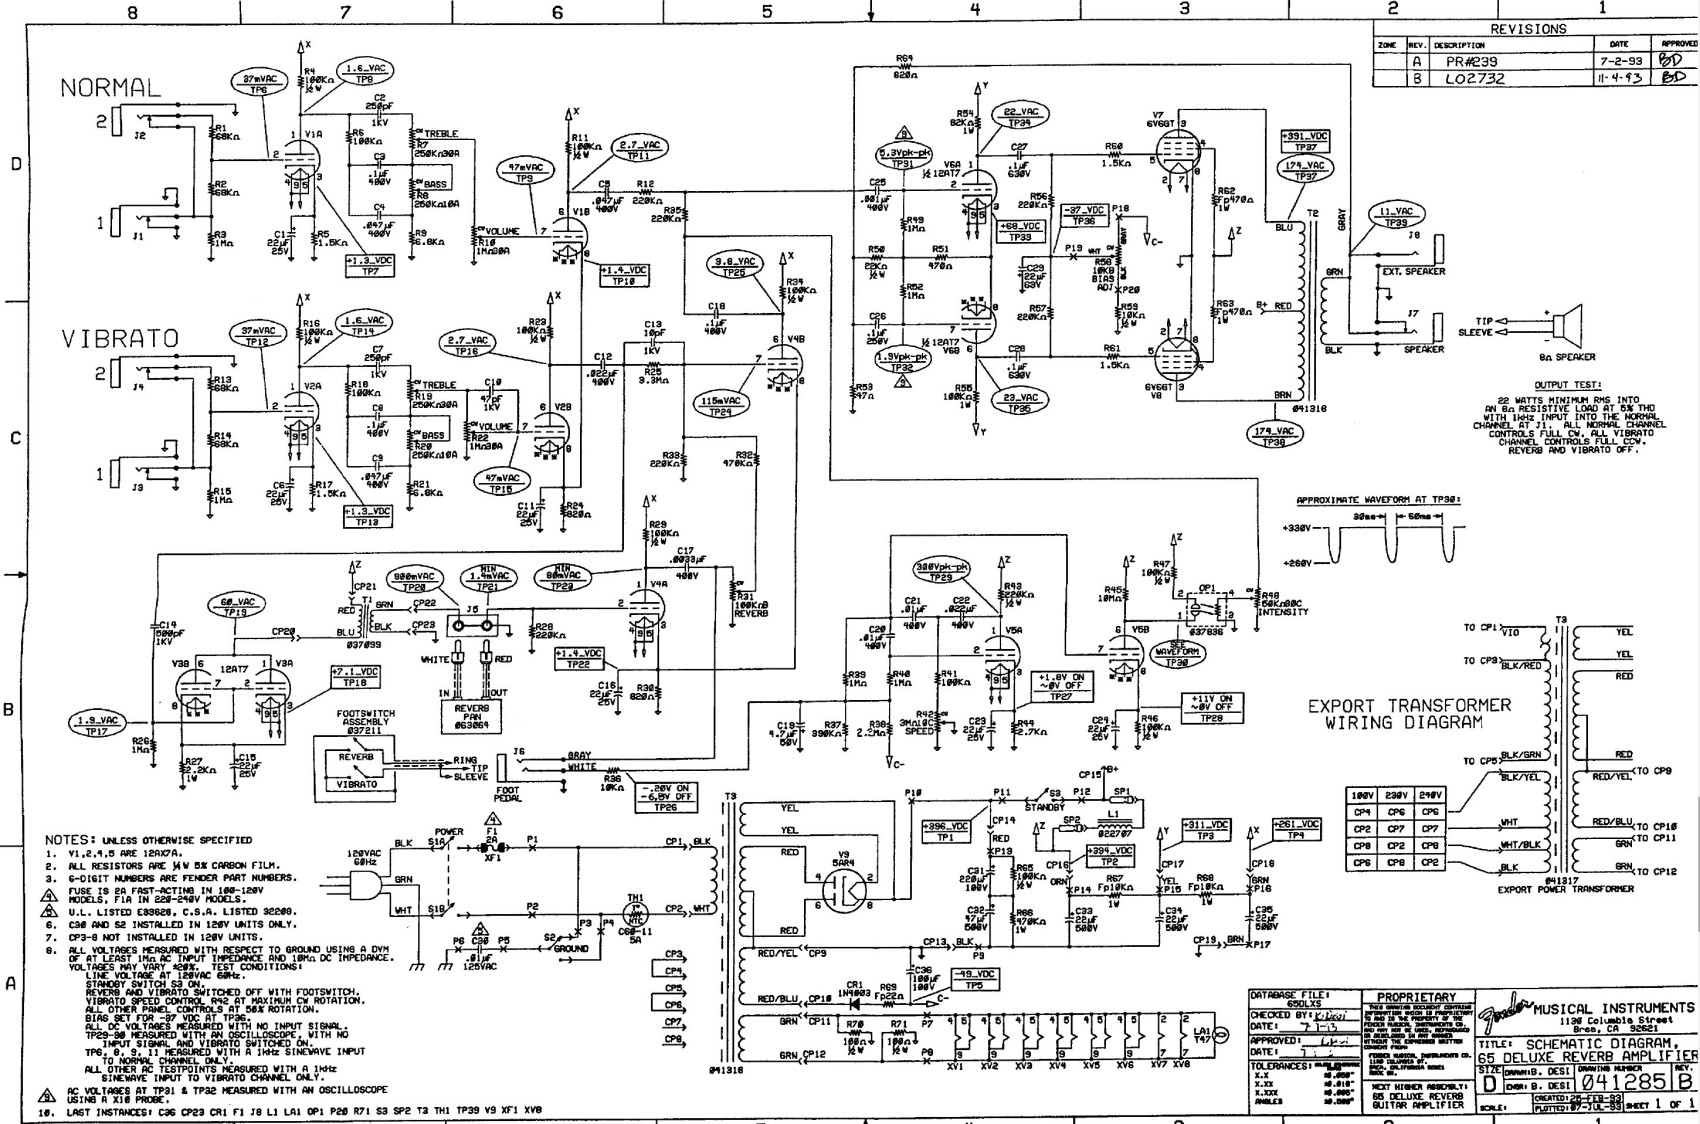 Fender Princeton Chorus Schematic on fender super reverb schematic, fender ultimate chorus specs, fender princeton 650 schematic, fender power chorus schematic, fender princeton 112 schematic, roland jazz chorus schematic, fender frontman 15g schematic, fender amp manuals, fender pro reverb schematic, fender deluxe 85 schematic, fender frontman 25r schematic, fender blues deluxe schematic, fender the twin schematic, princeton reverb schematic, fender princeton 65 schematic, fender hot rod deville schematic, fender amp schematics, fender m 80 manual, fender frontman 212r schematic, fender champ schematic aa764,